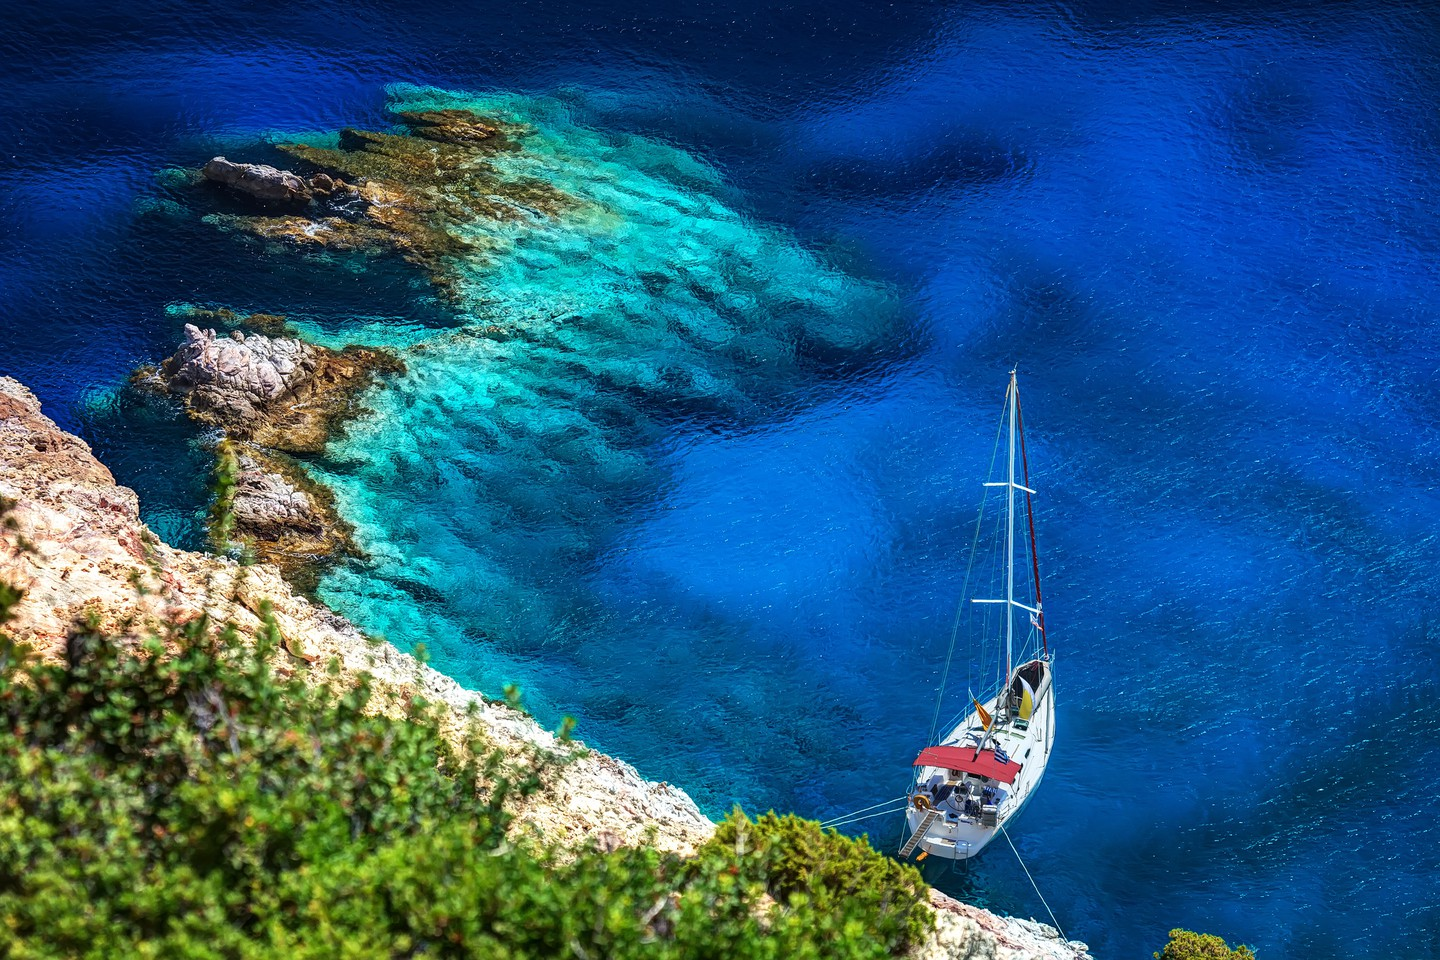 Dive off a yacht moored in a secluded cove